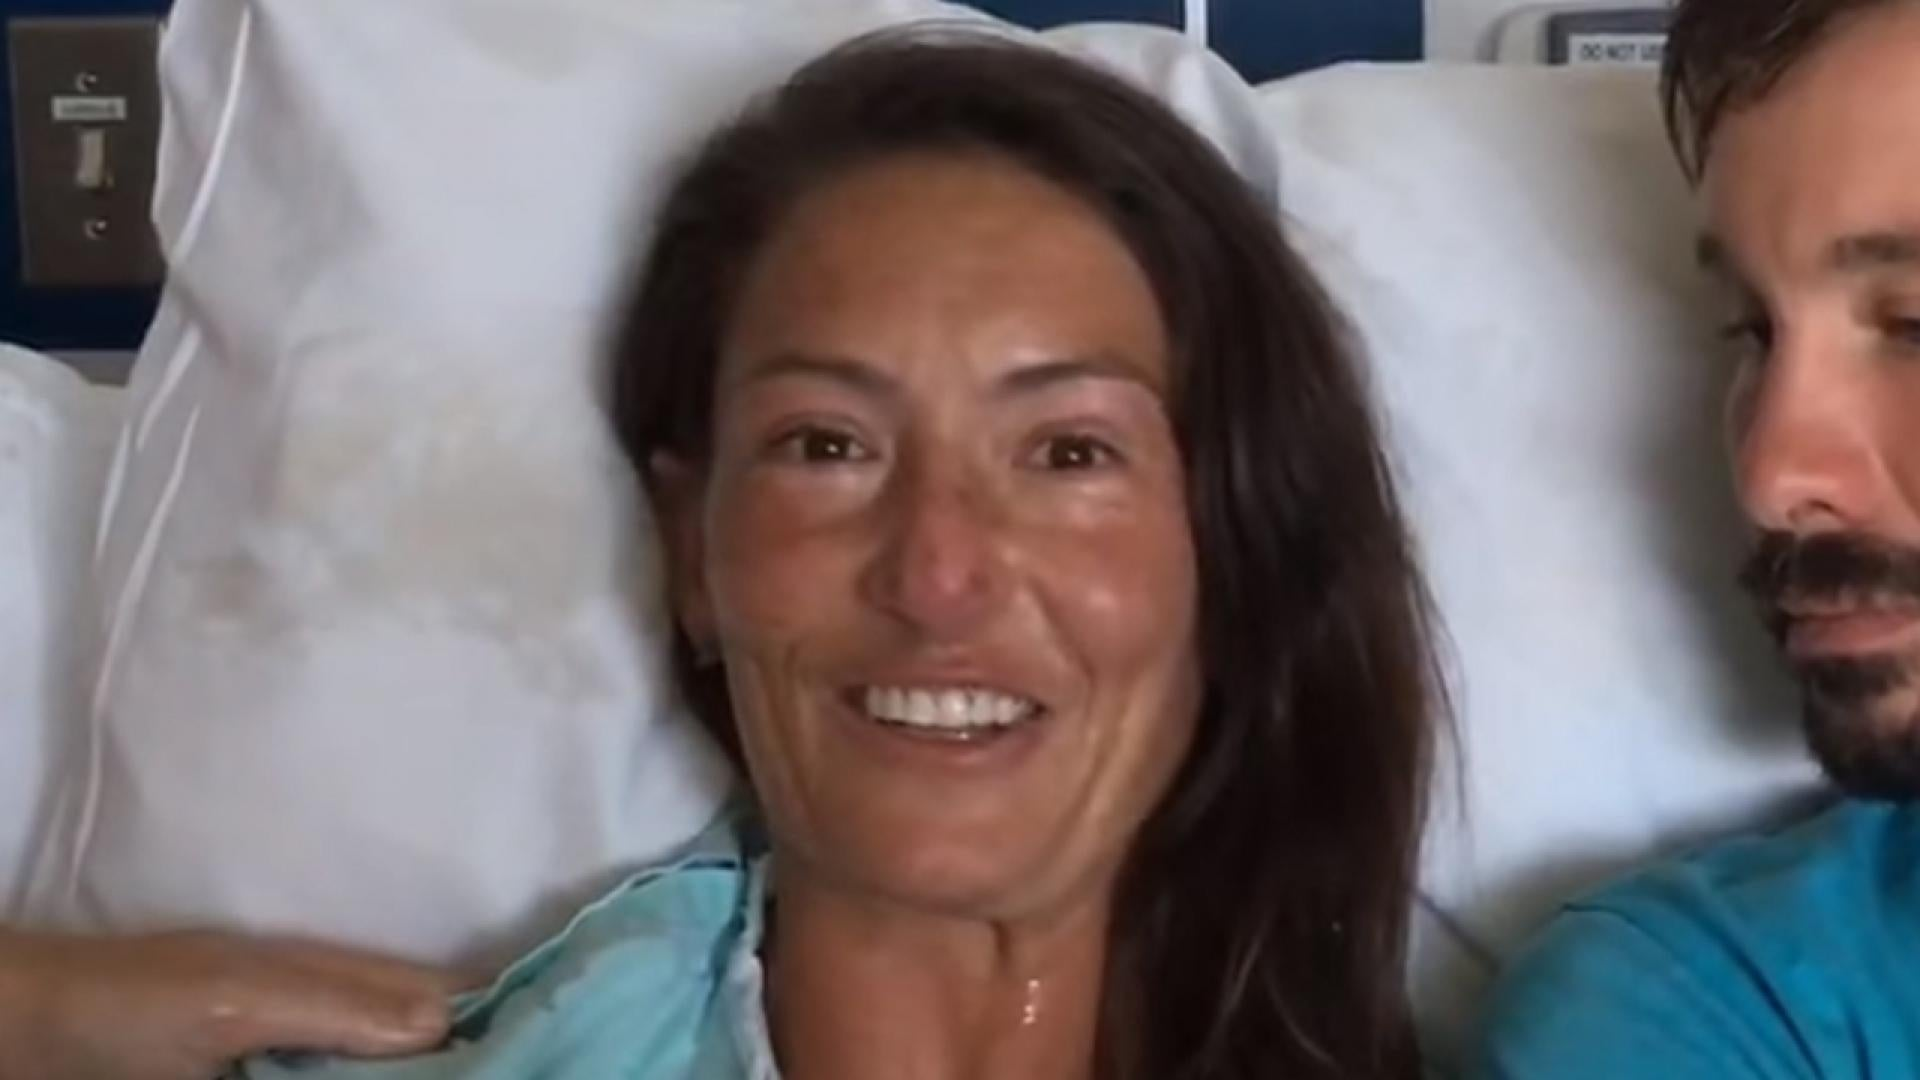 Amanda Eller spoke from her hospital bed about being rescued after two weeks lost in the Hawaiian wilderness.